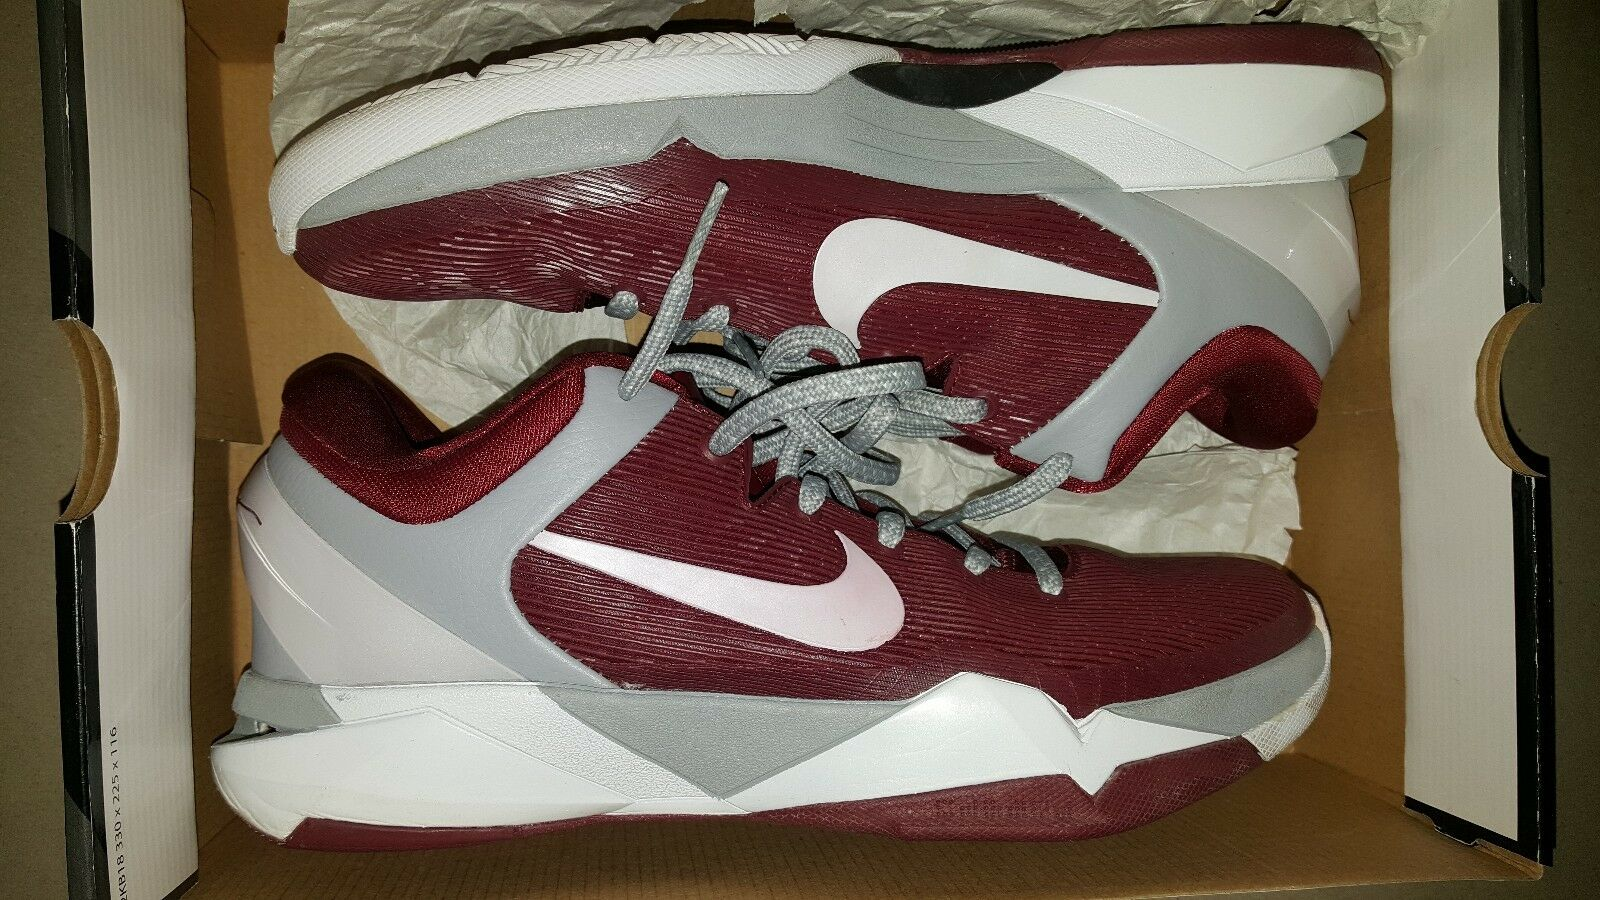 NIKE ZOOM KOBE VII 7 SYSTEM LOWER MERION ACES 488371-600 SIZE 9.5  USED